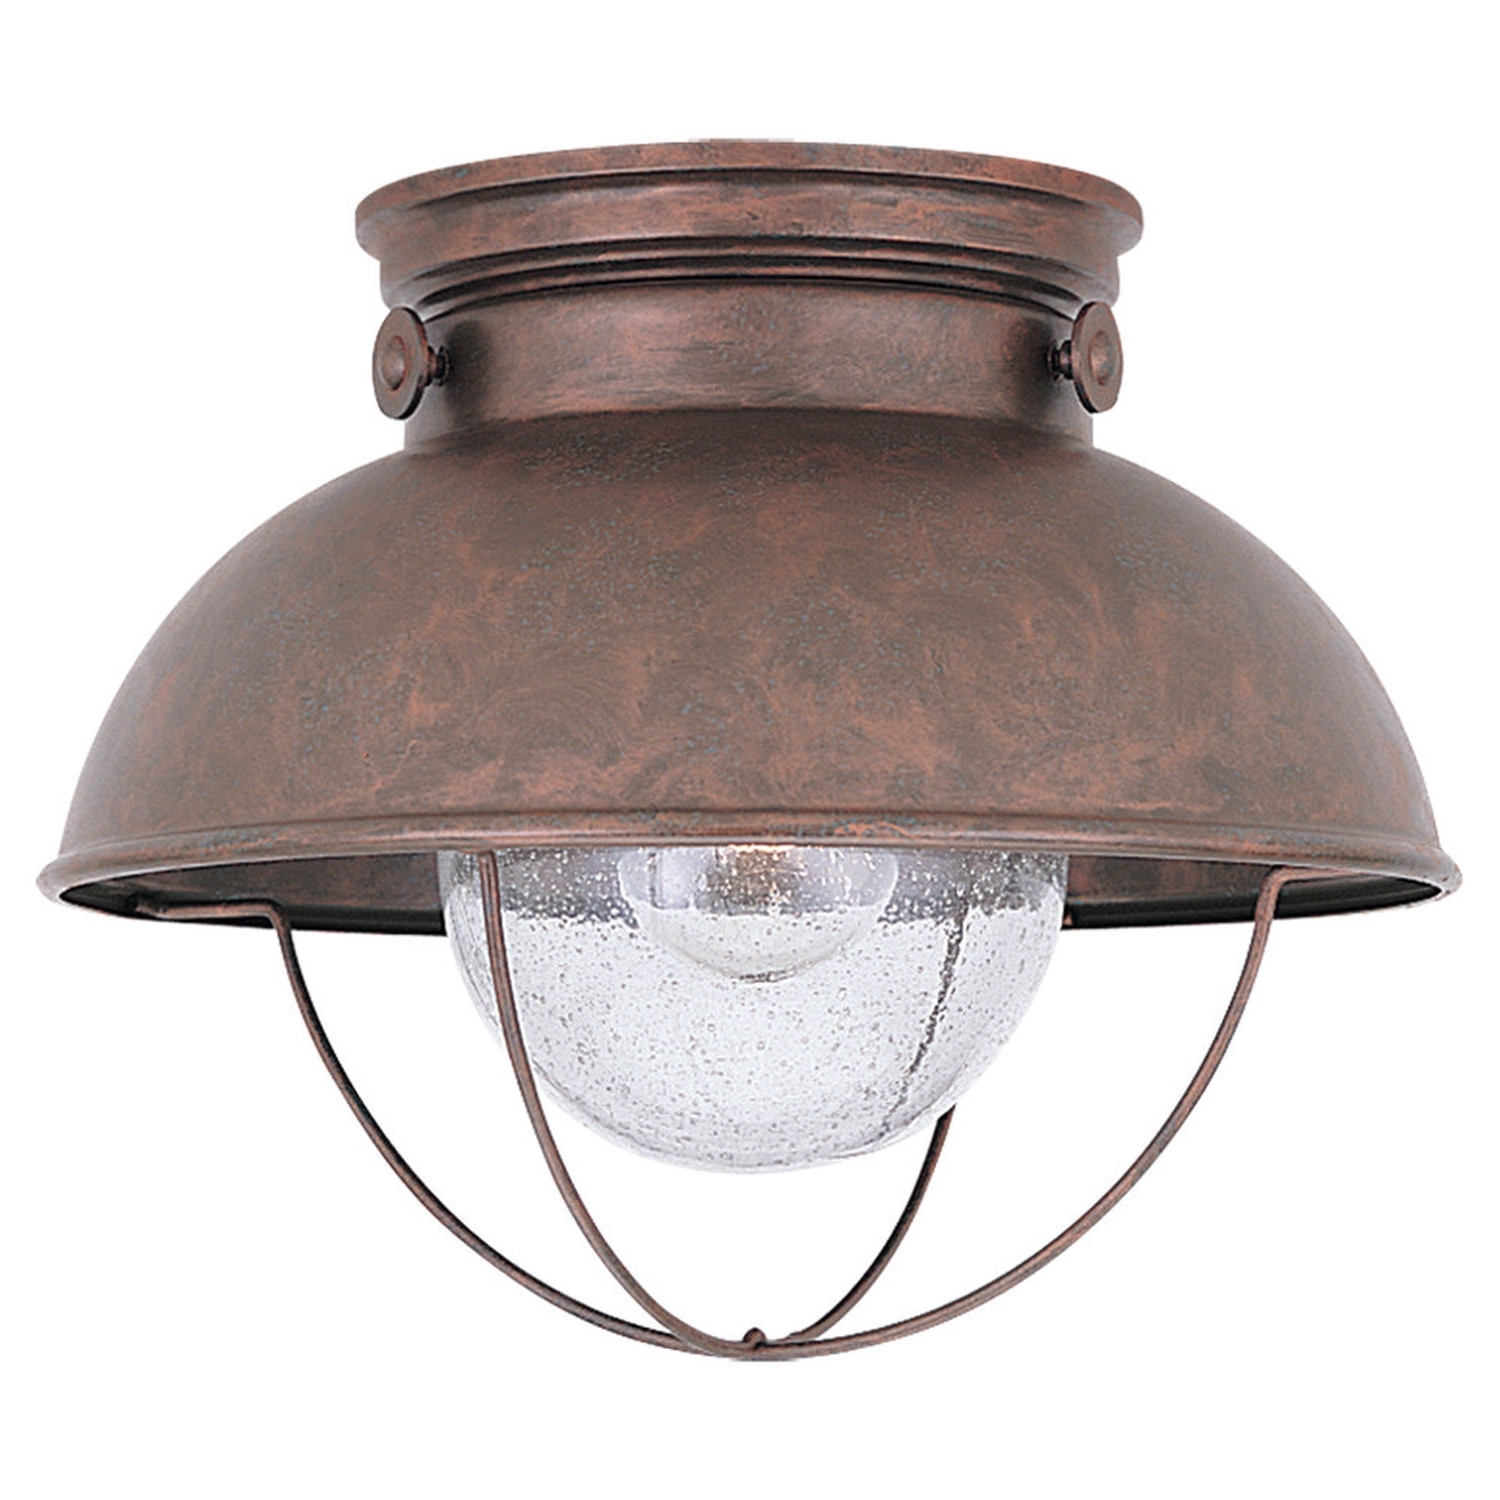 Outdoor Ceiling Lights Intended For Popular Sea Gull Lighting Sebring Weathered Copper Outdoor Ceiling Light On Sale (View 2 of 20)